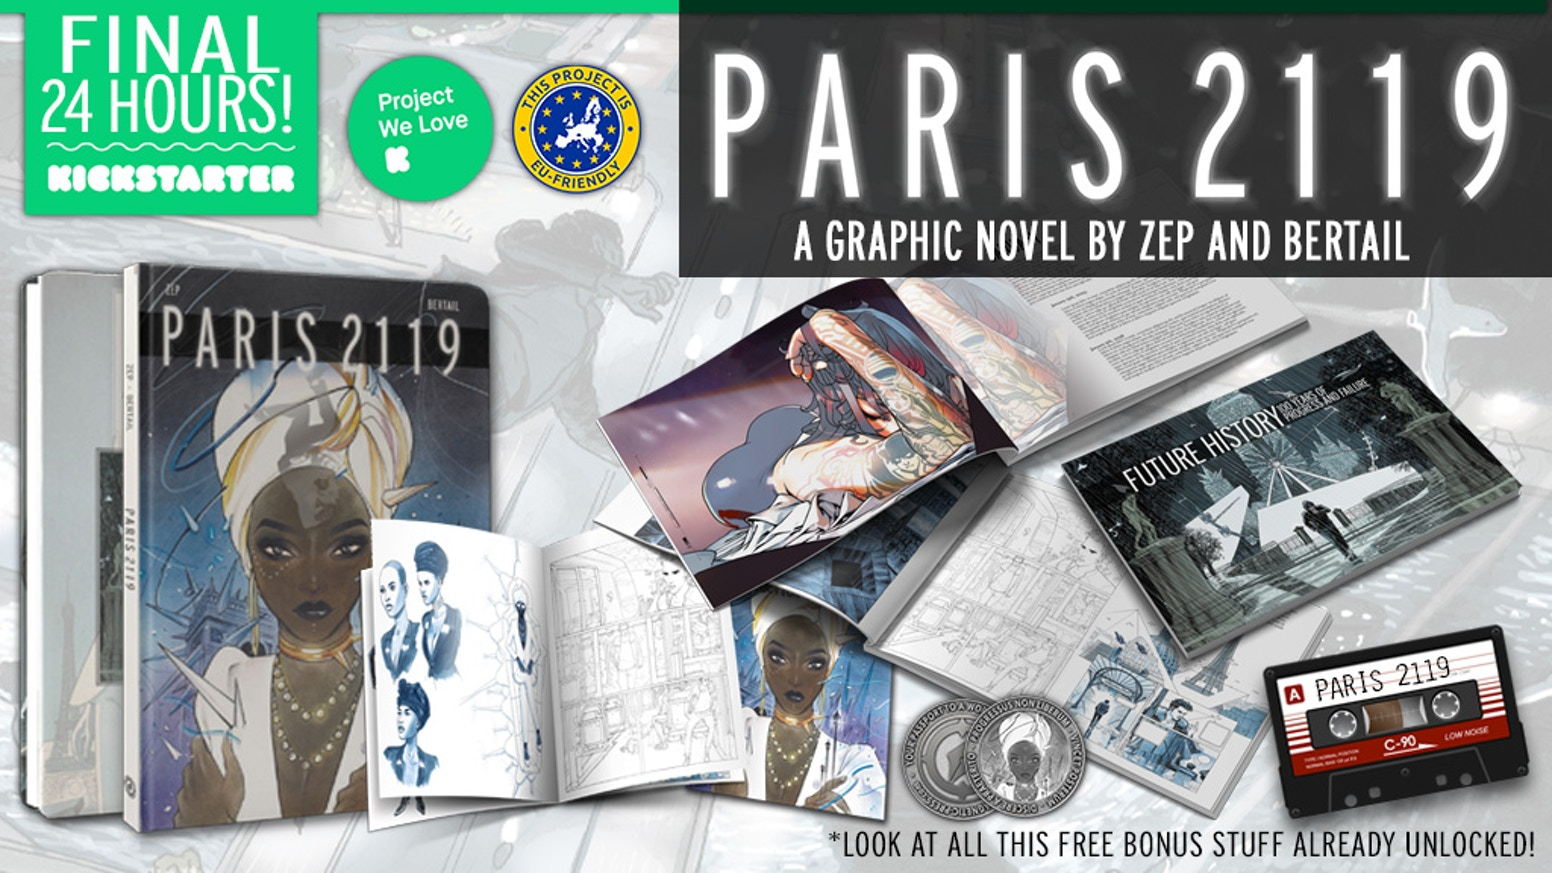 Black Mirror meets Blade Runner in this deluxe graphic novel by Zep and Dominique Bertail with exclusive variant cover by Peach Momoko.